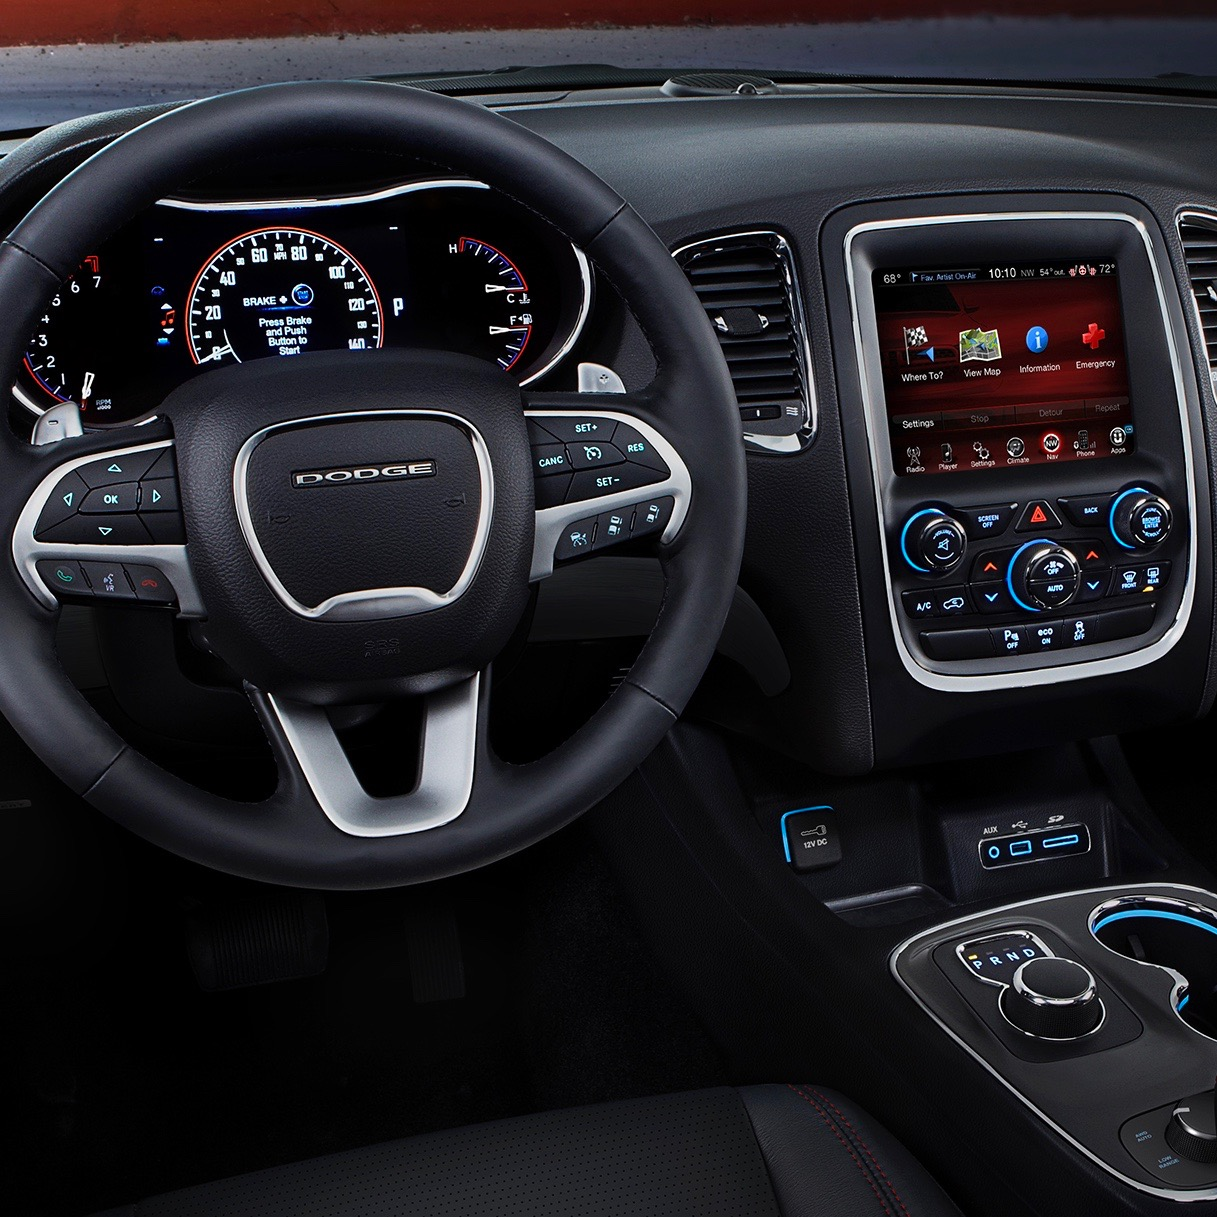 2018 Dodge Durango Interior: 2017, 2018, 2019 Ford Price